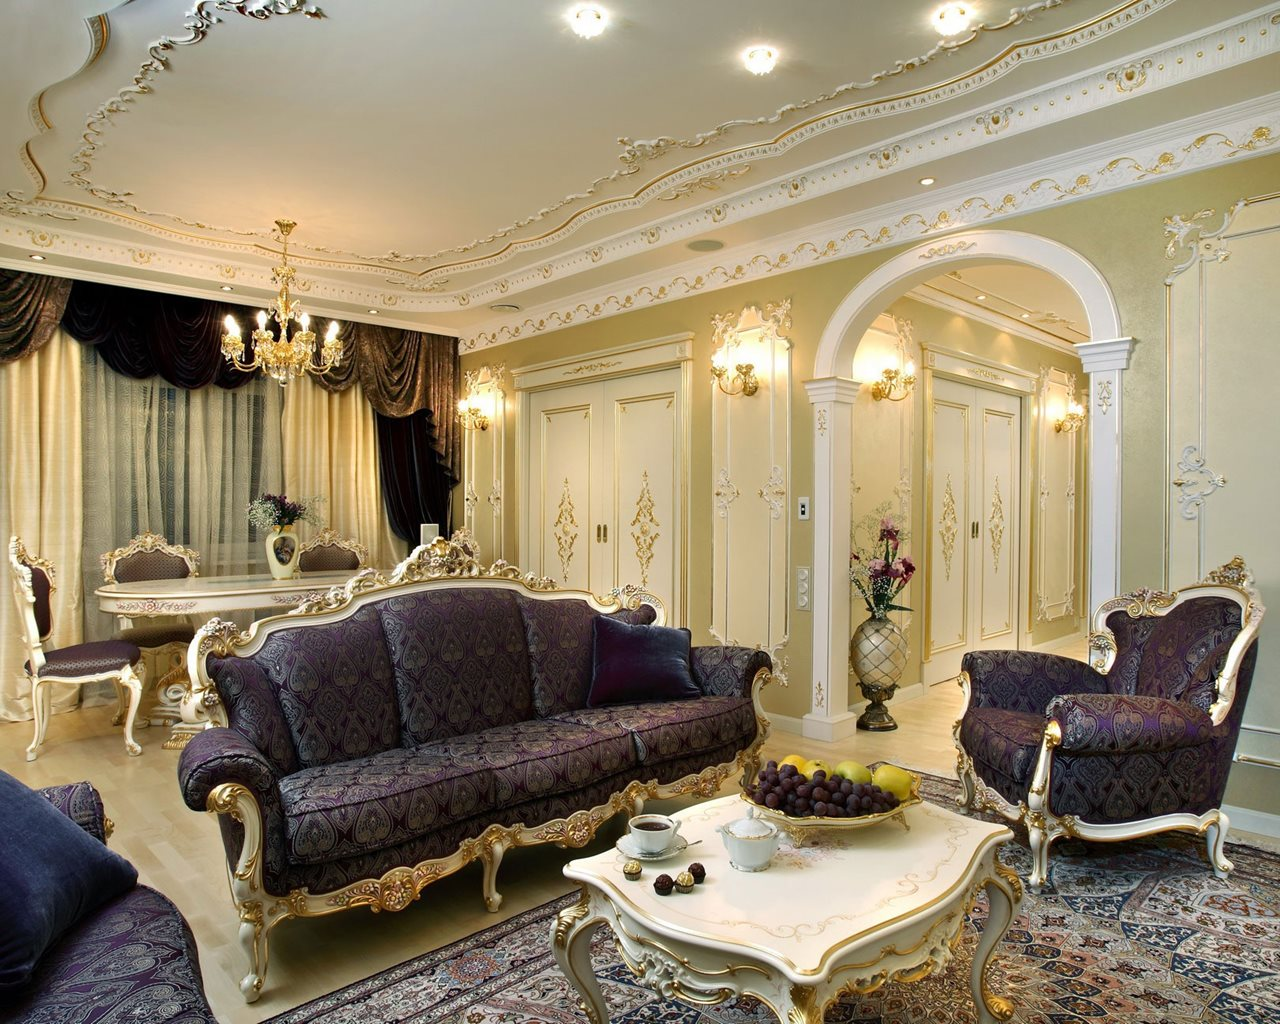 Baroque style interior design ideas - Decoration salon style romantique ...